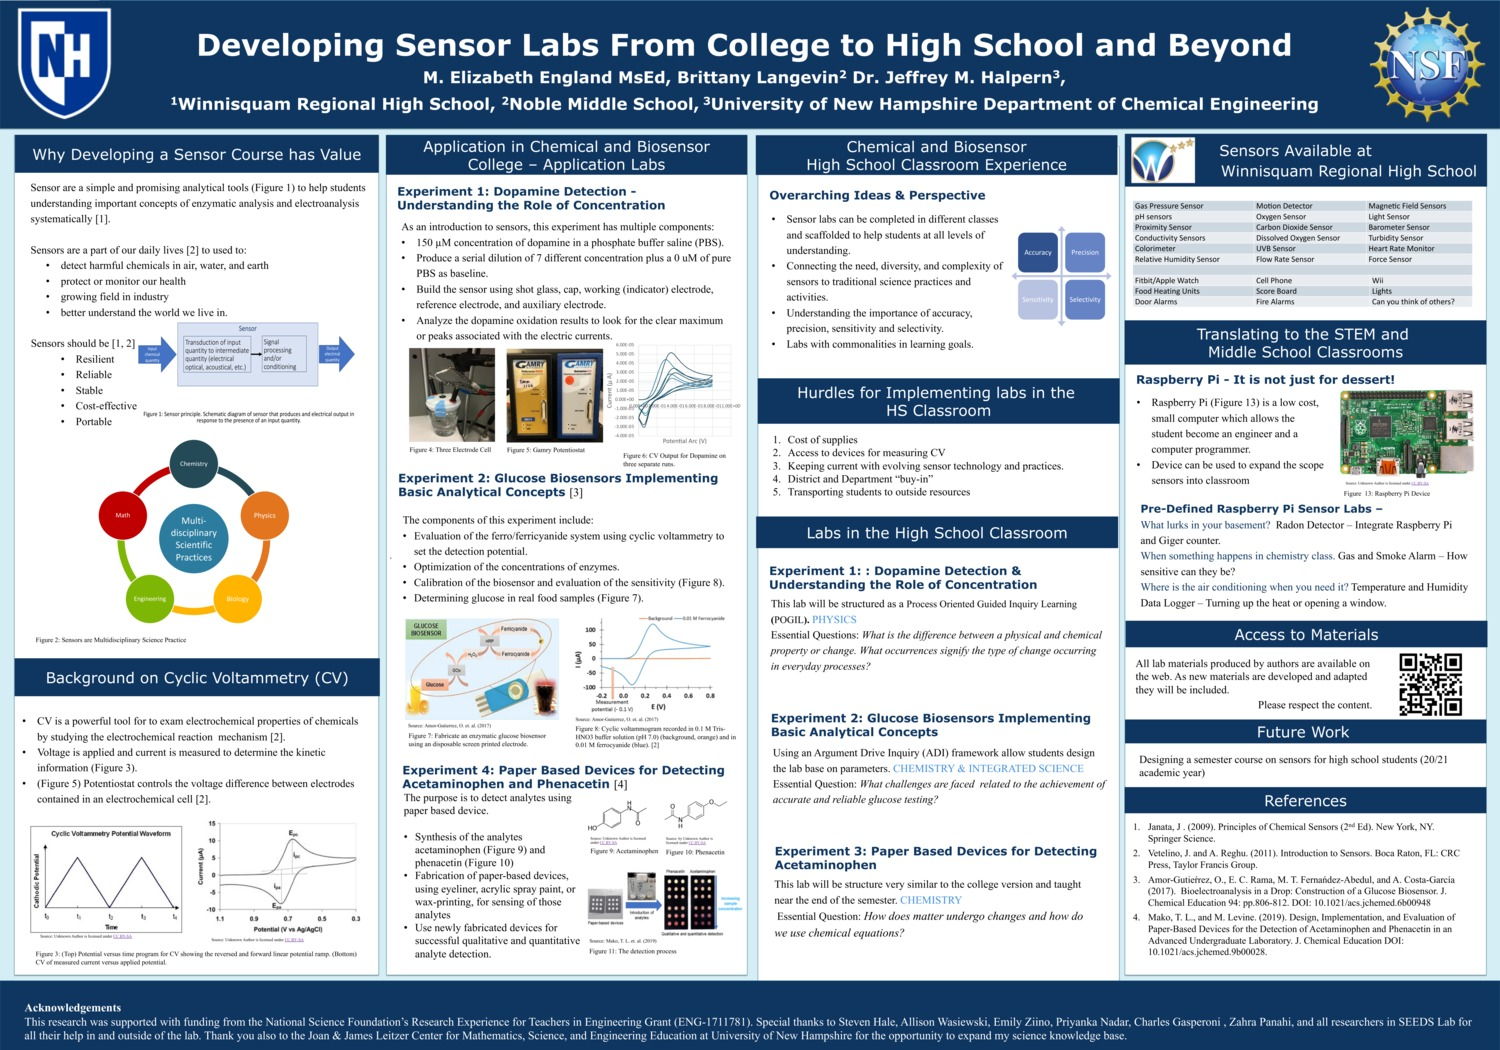 Biosensors From College To High School by ElizE